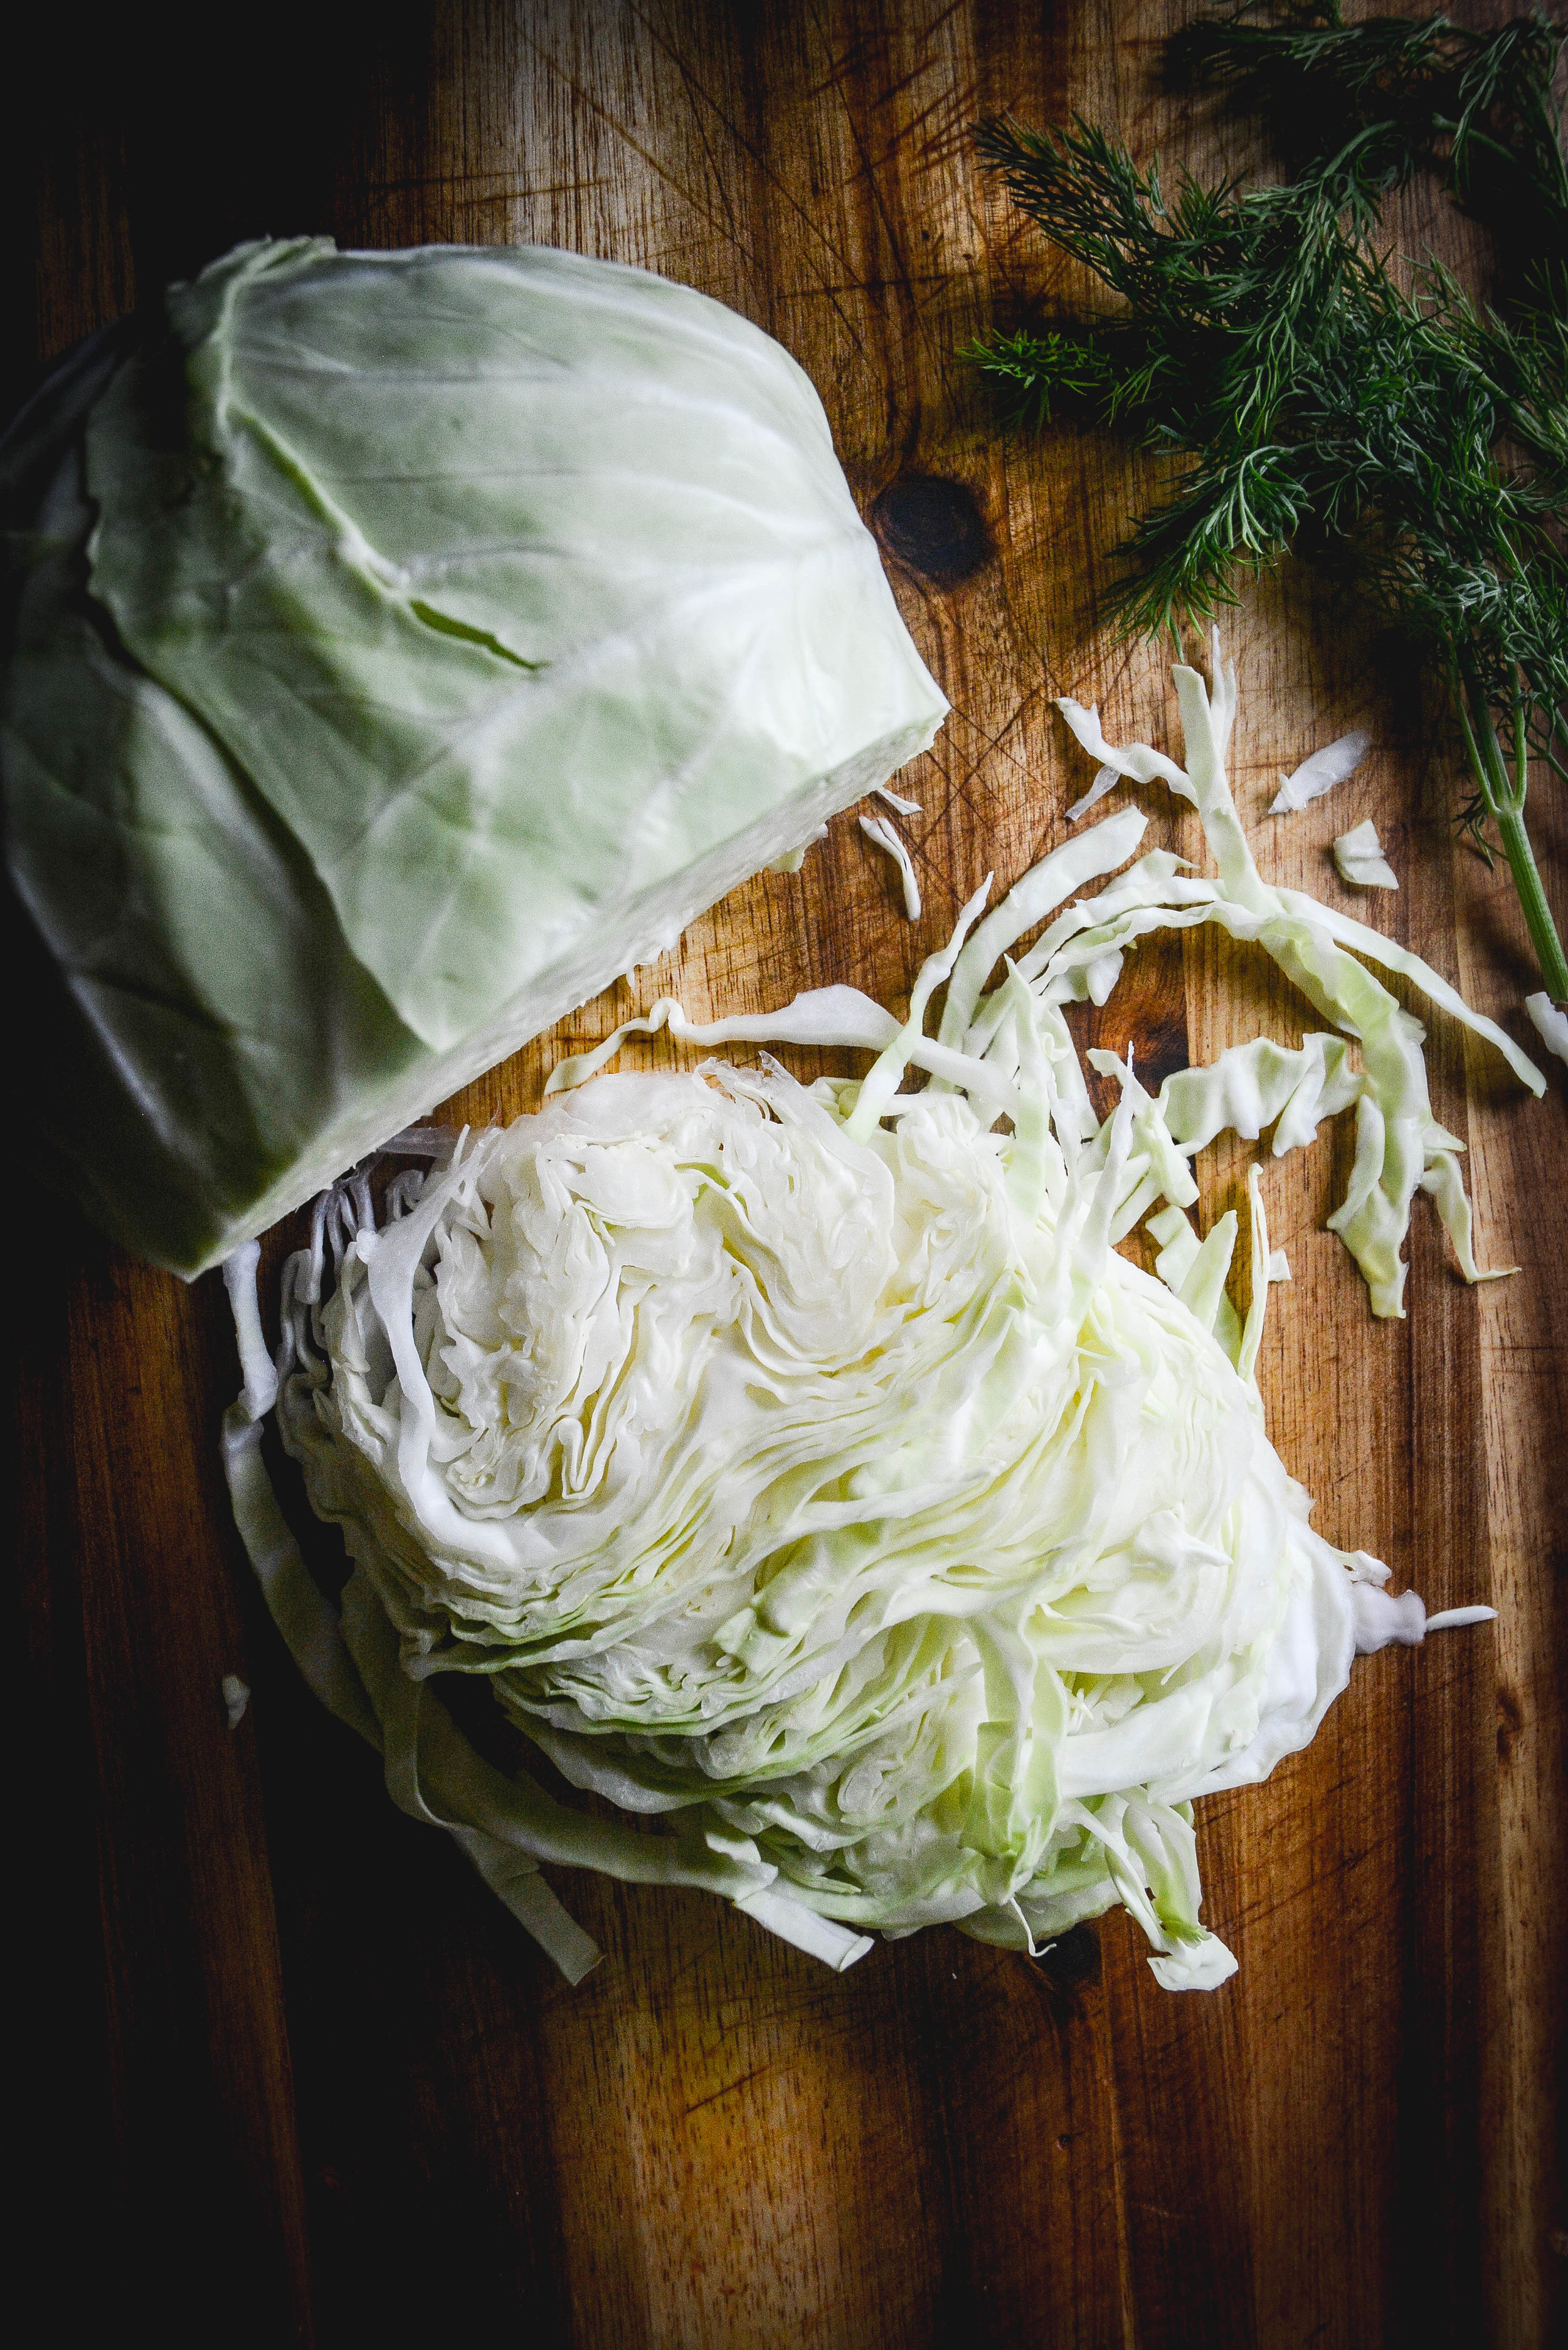 A basic recipe for making probiotic rich sauerkraut at home with just two ingredients.